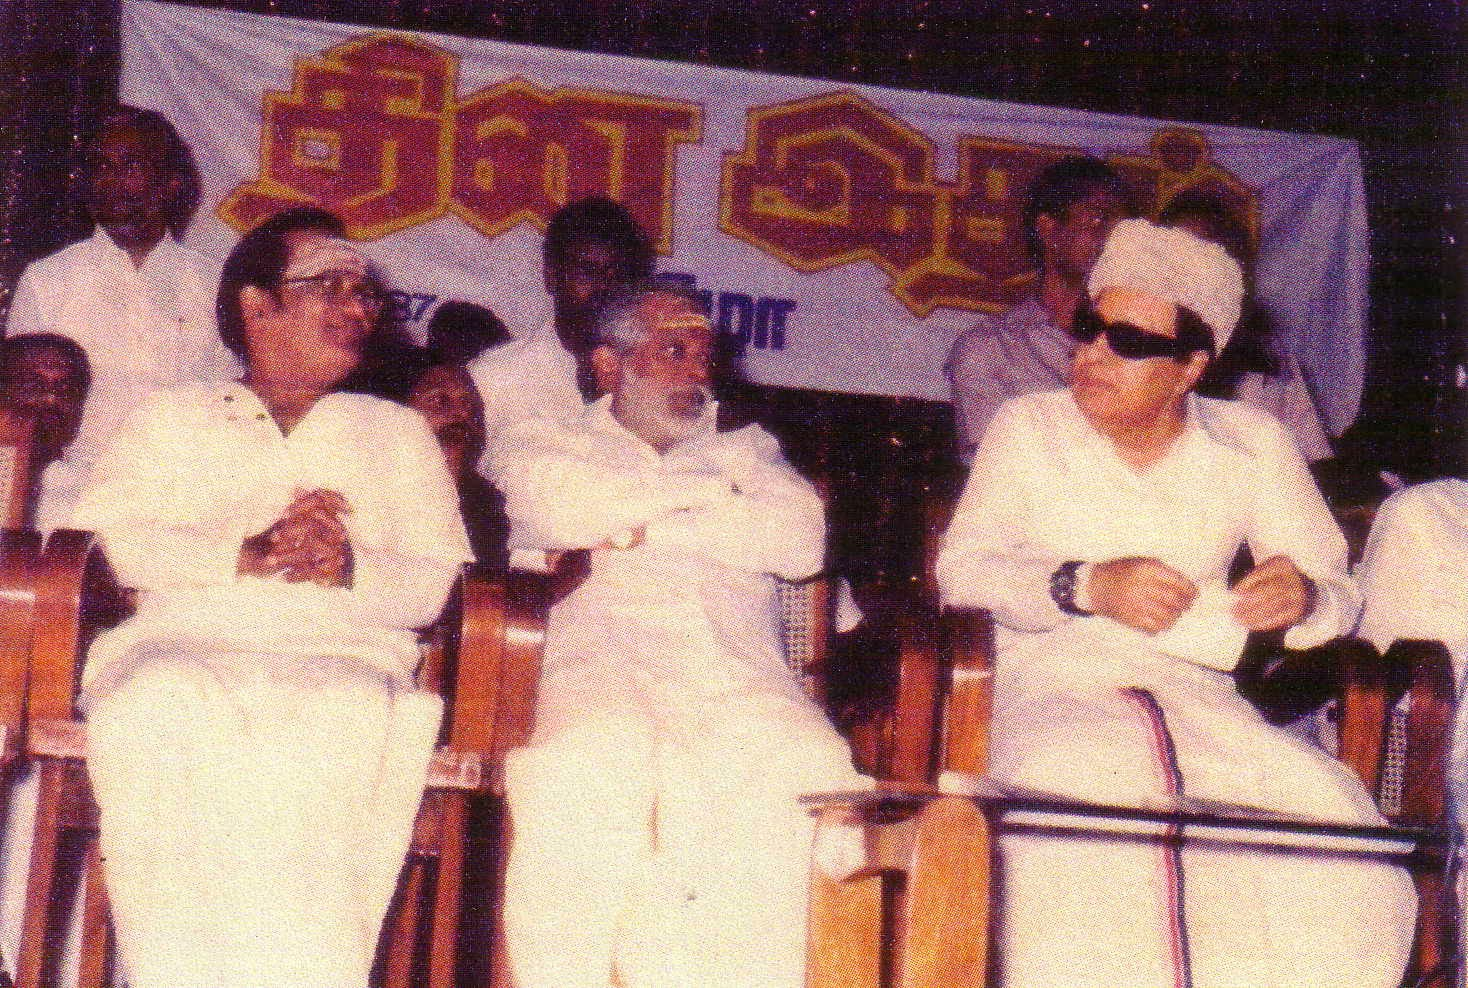 'Makkal Thilagam' MGR with Music Director M.S. Viswanathan & Playback Singer T.M. Soundarajan